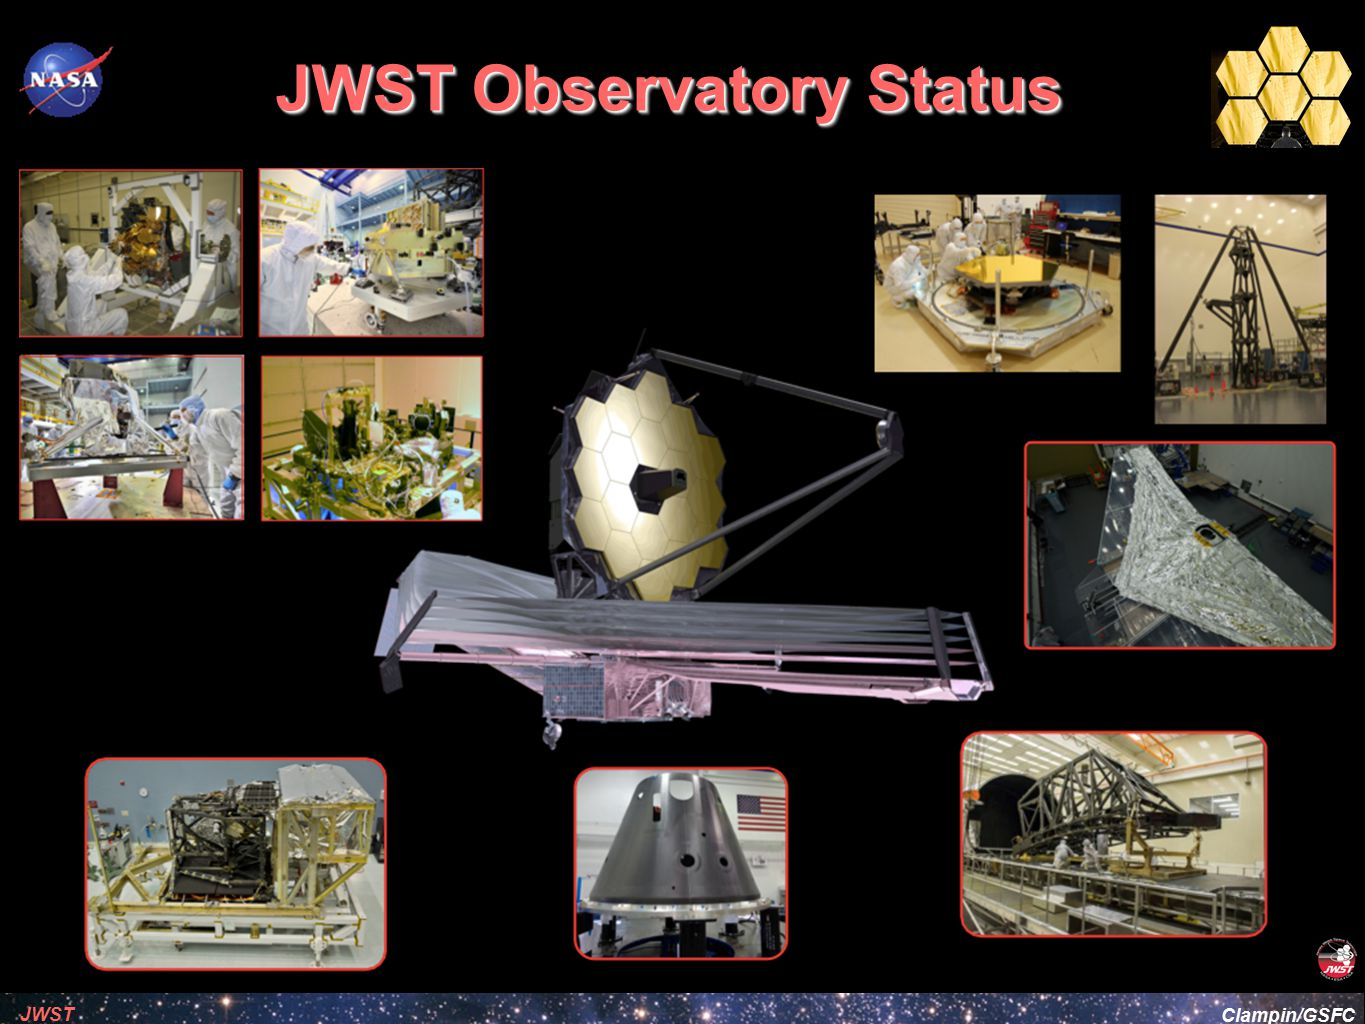 Clampin/GSFC JWST What time is it.